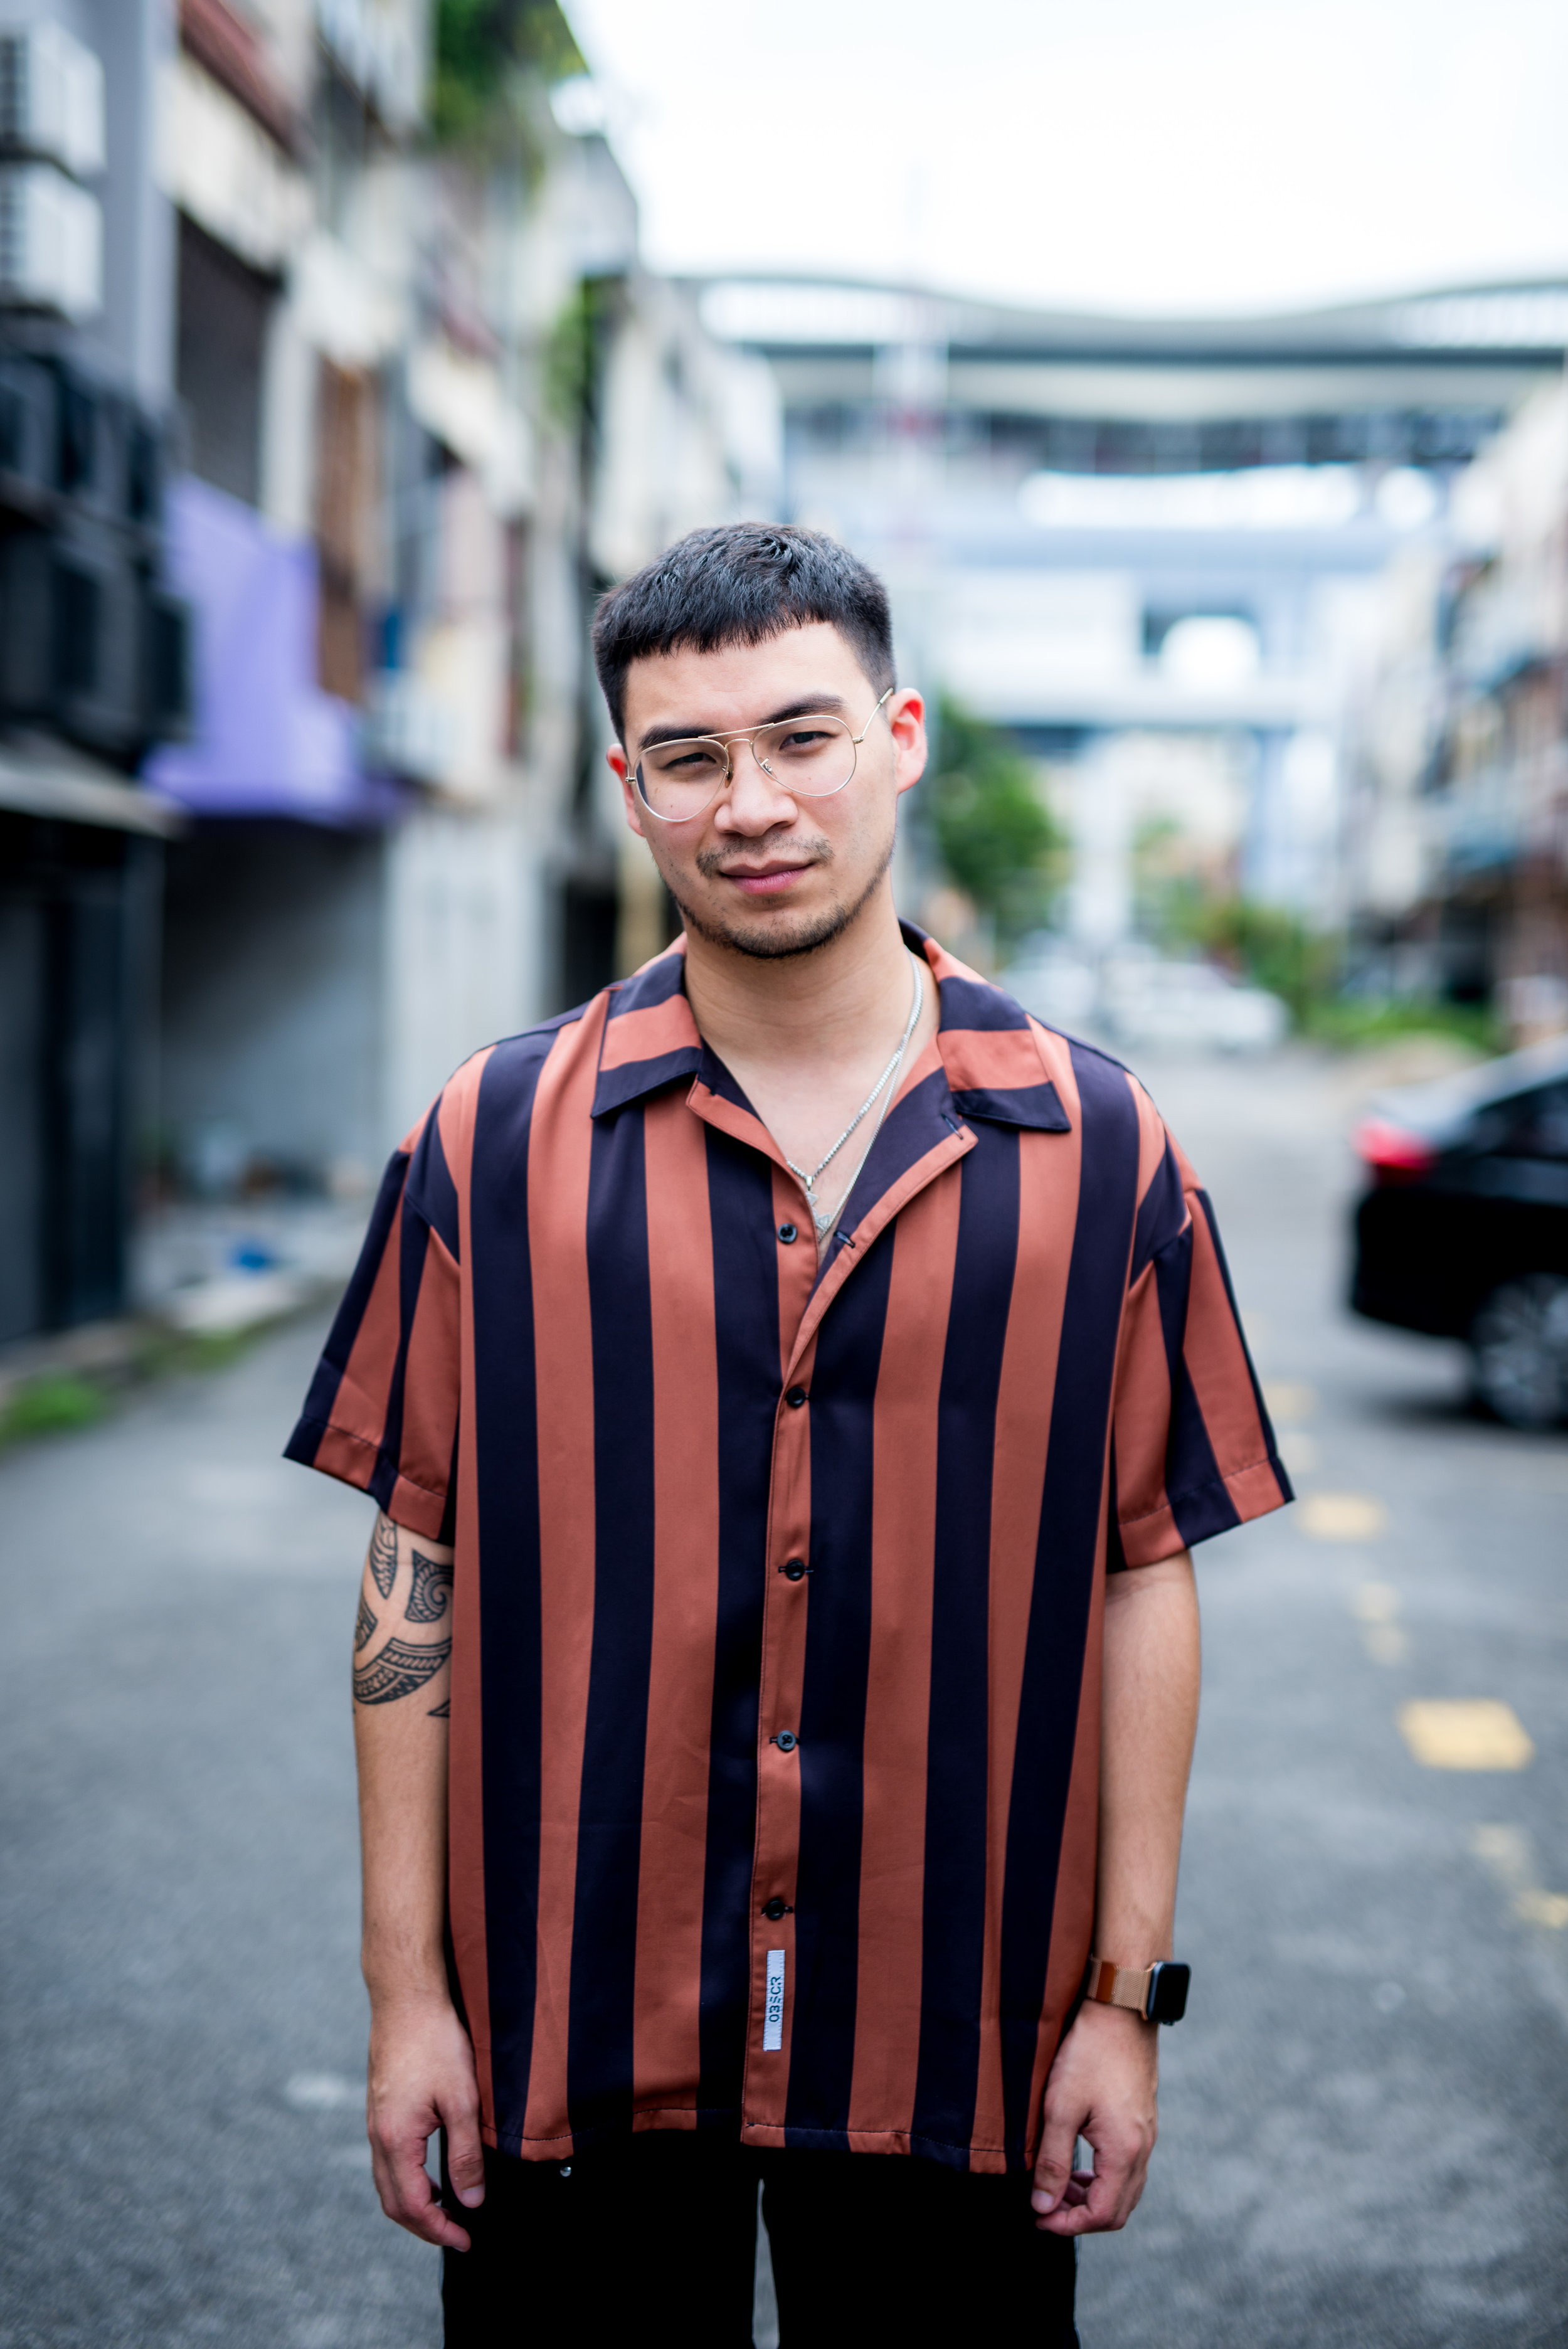 Sime Darby - People of Subang - Ethan - DDY_5682 - Photo by All Is Amazing.jpg